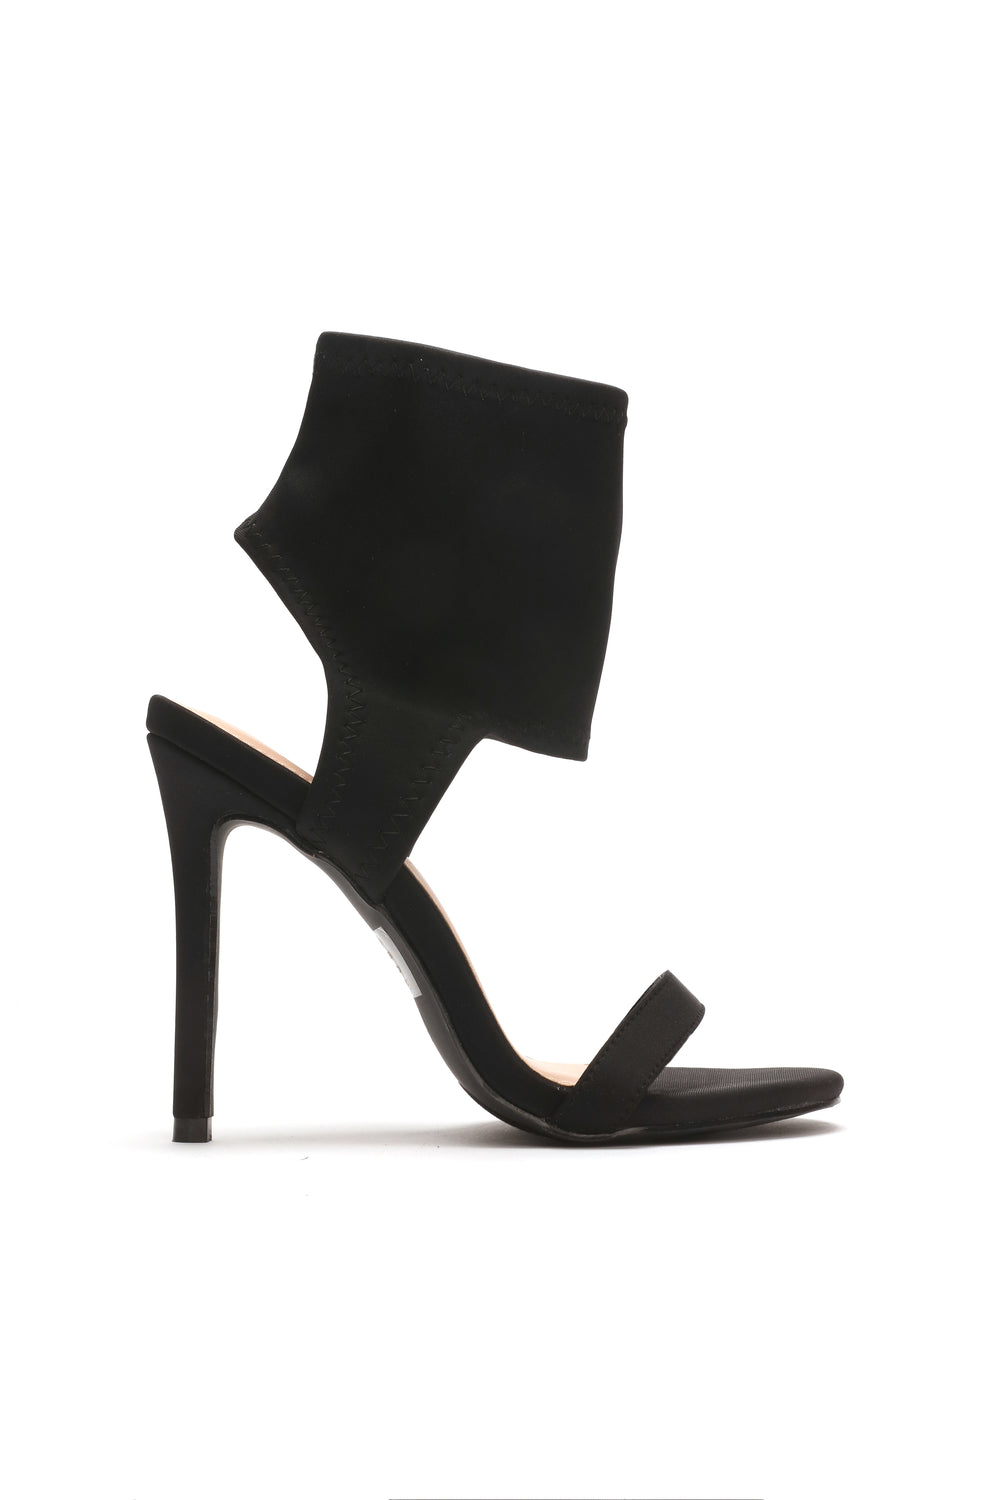 Bond Babe Heel - Black